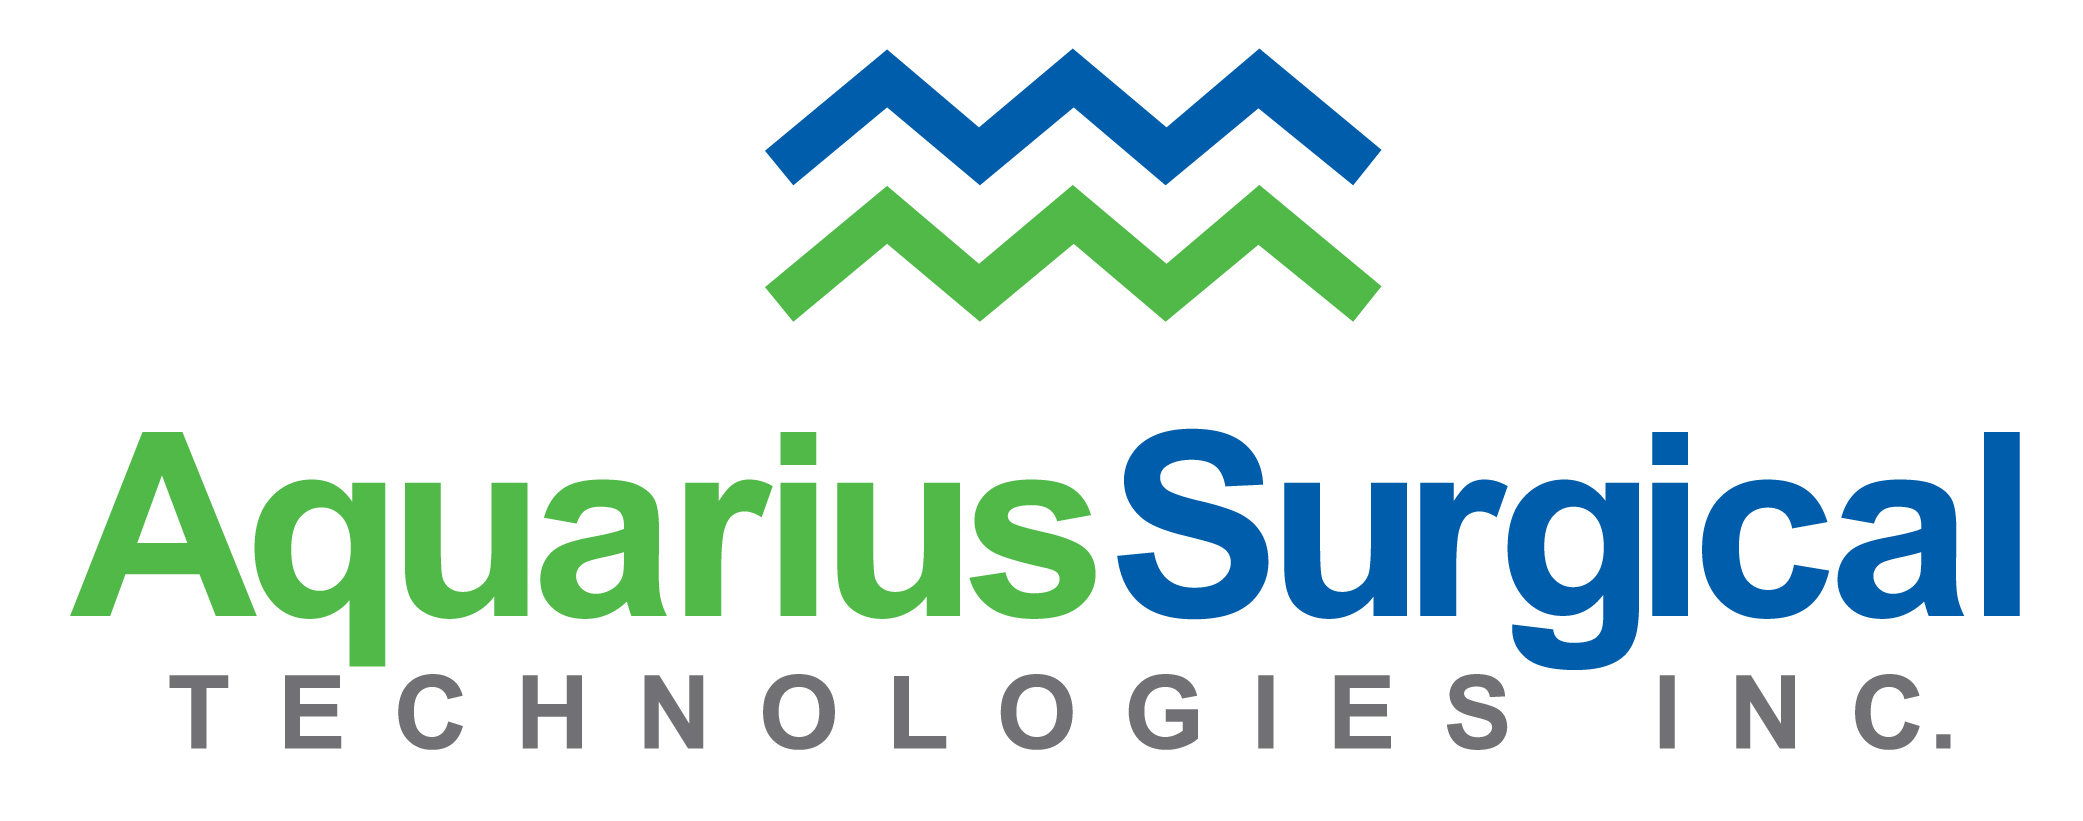 Aquarius Surgical Technologies Inc.